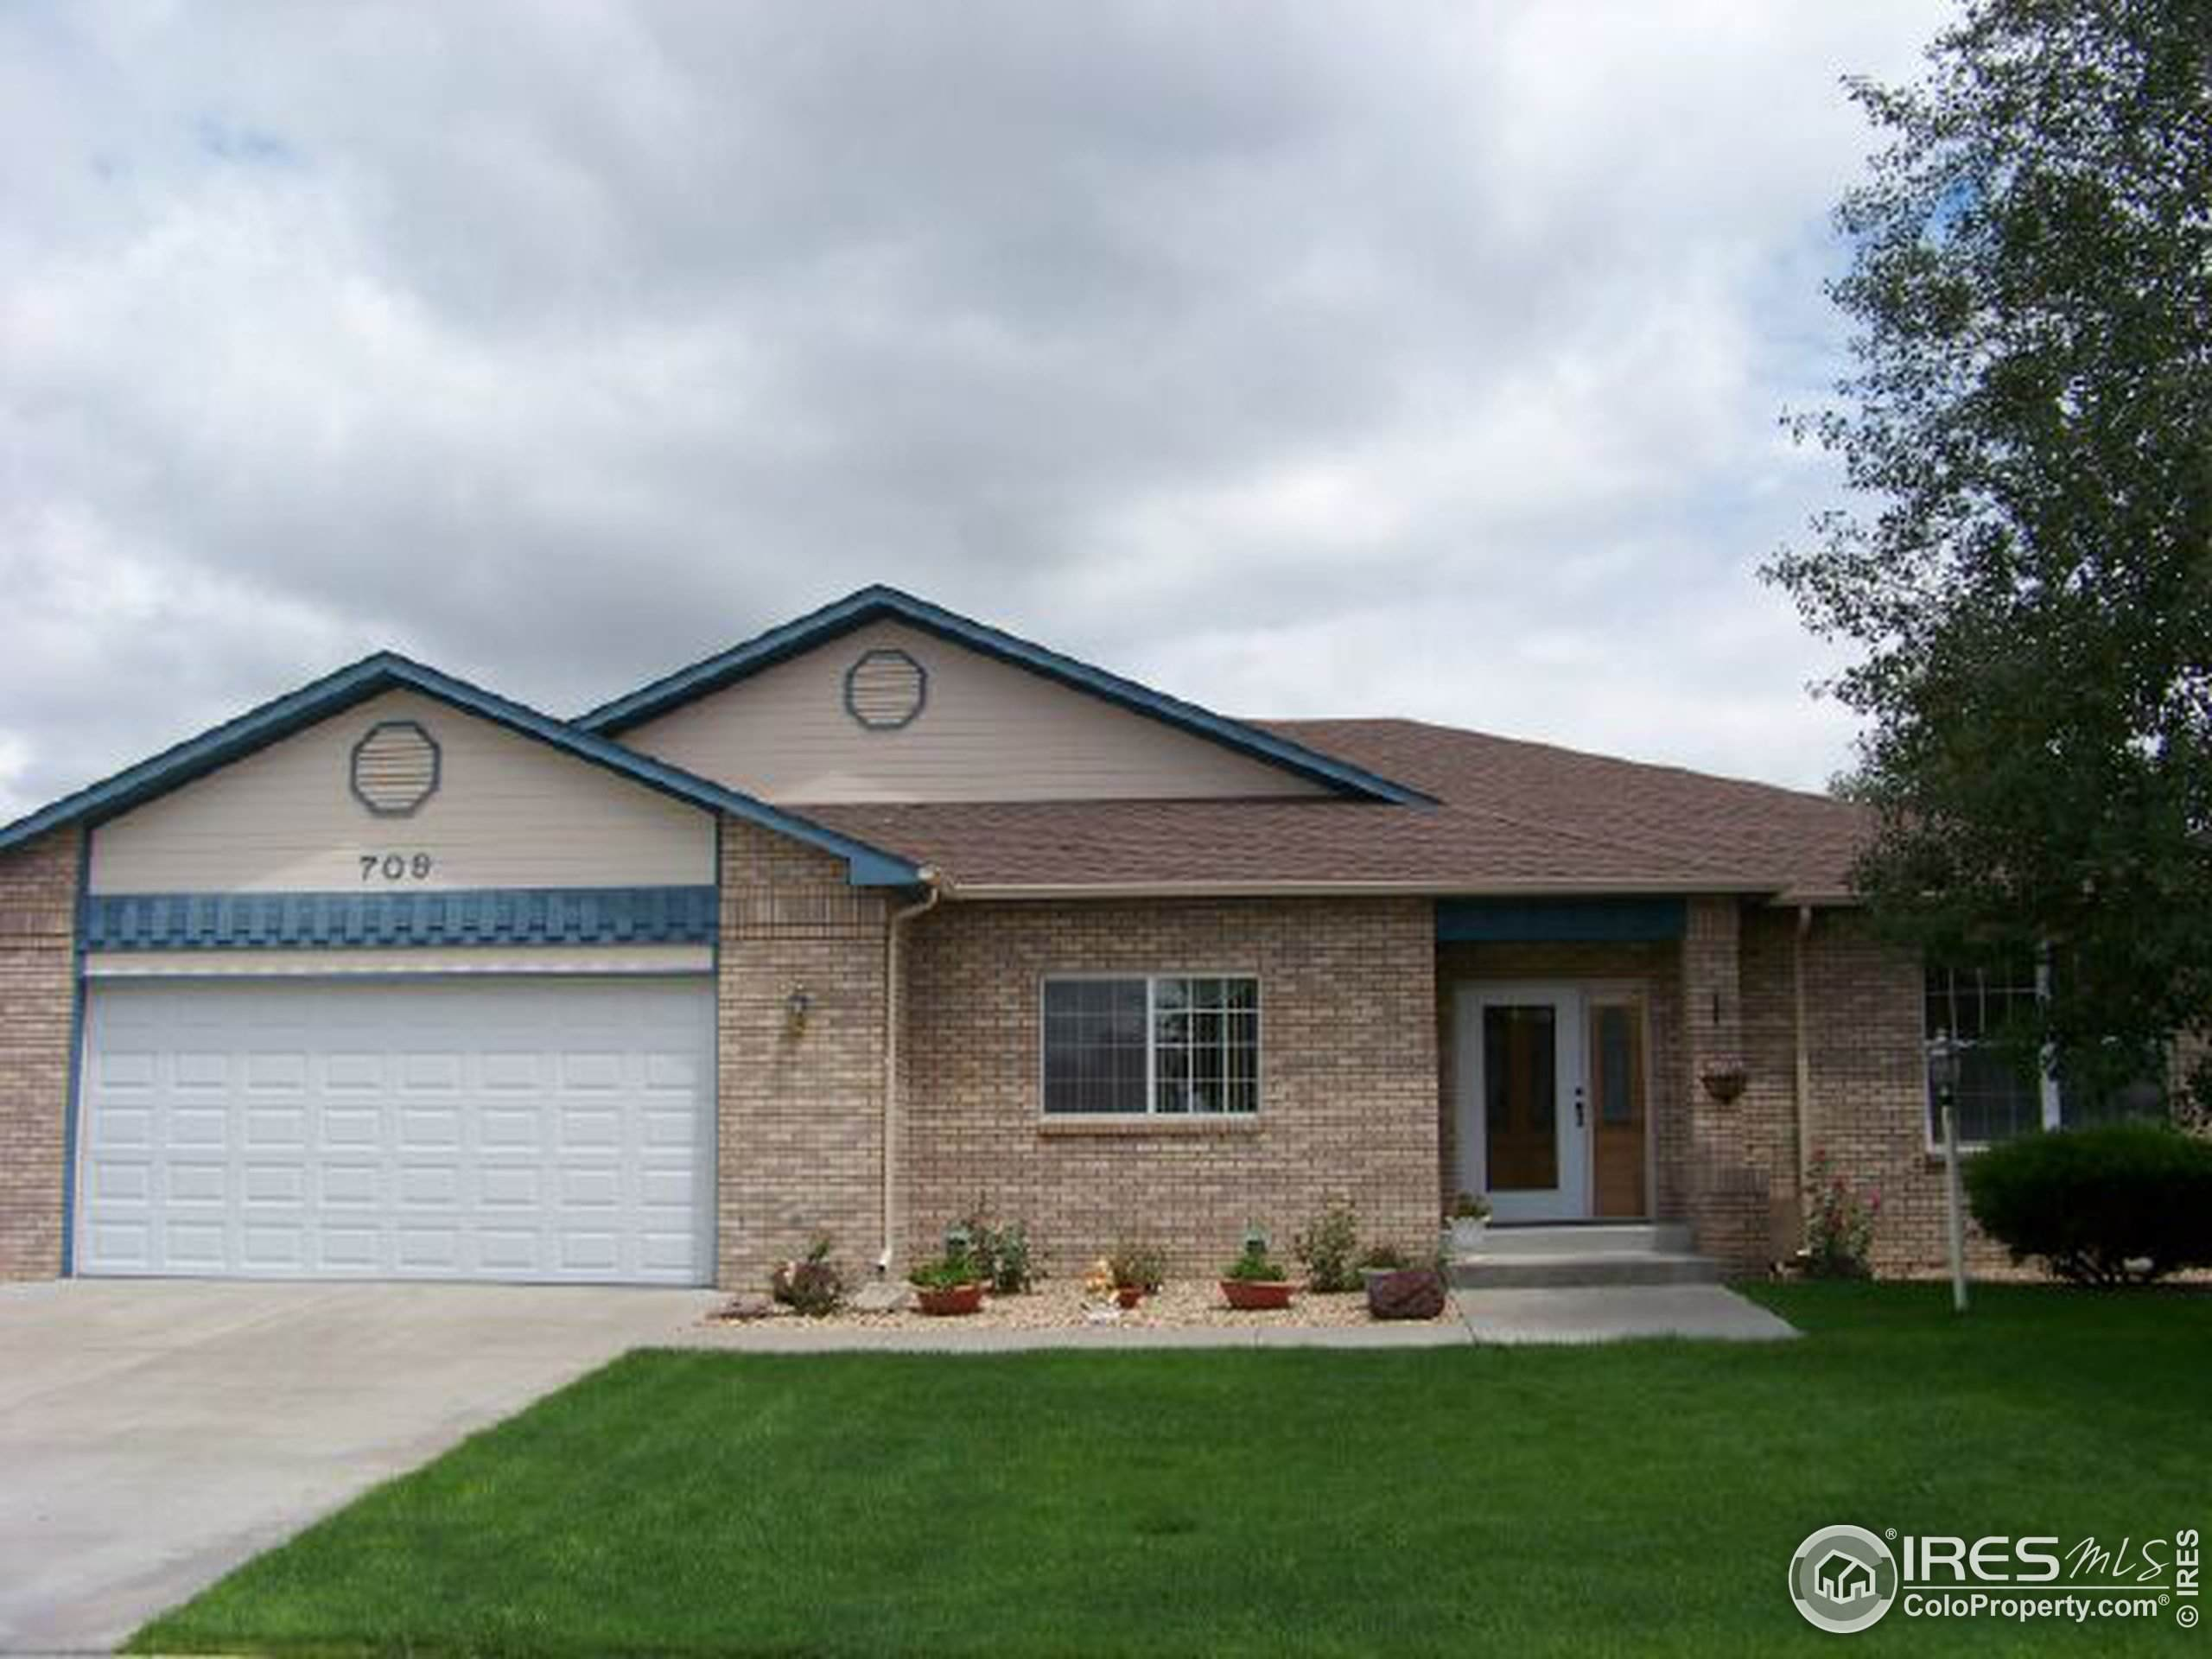 2312 74th Ave Ct, Greeley, CO 80634 (MLS #931626) :: Jenn Porter Group